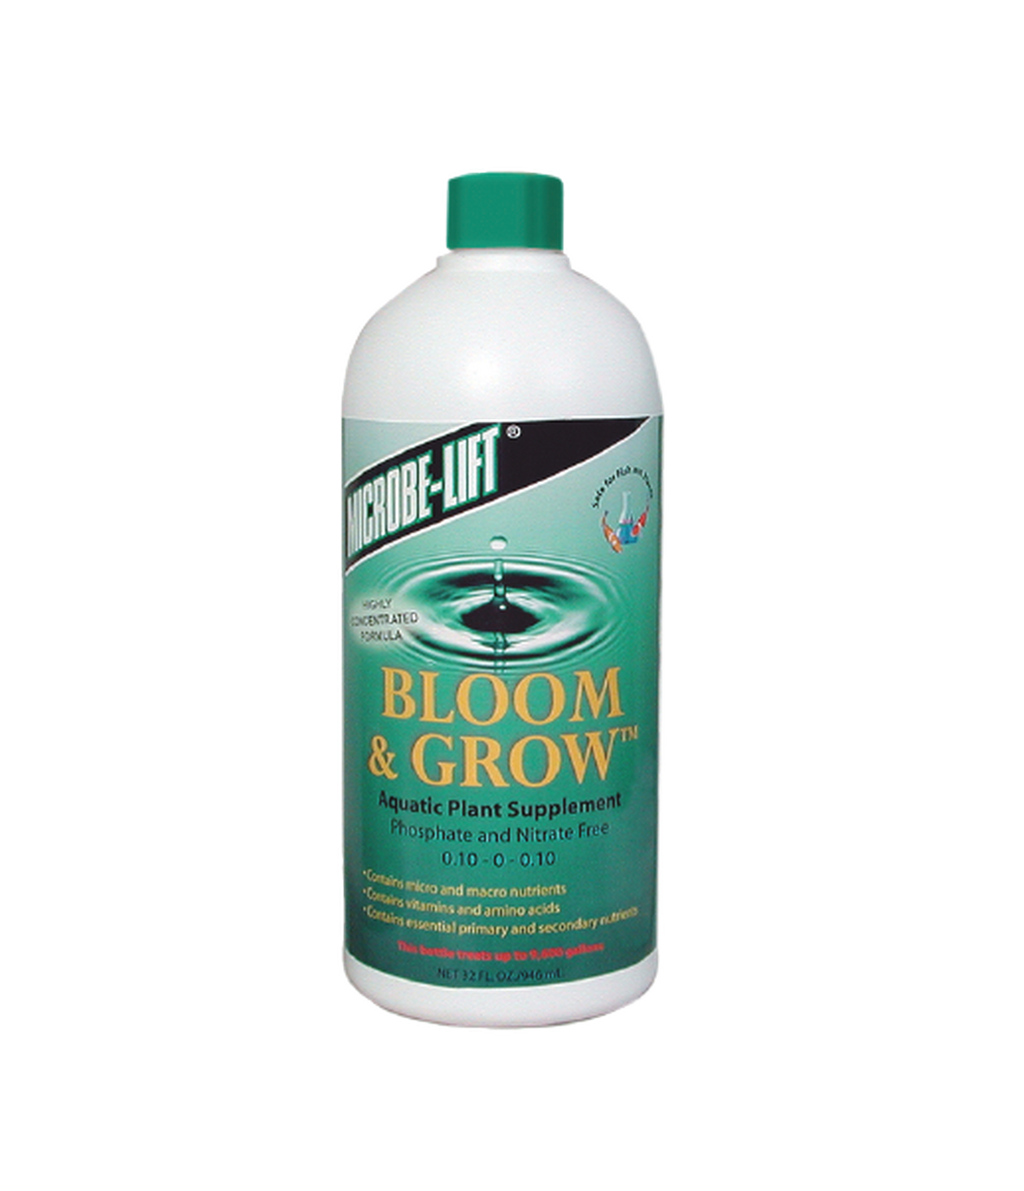 Bloom & Grow Aquatic Plant Supplement Phosphate Free 0.10-0-0.10 - 32 ounce